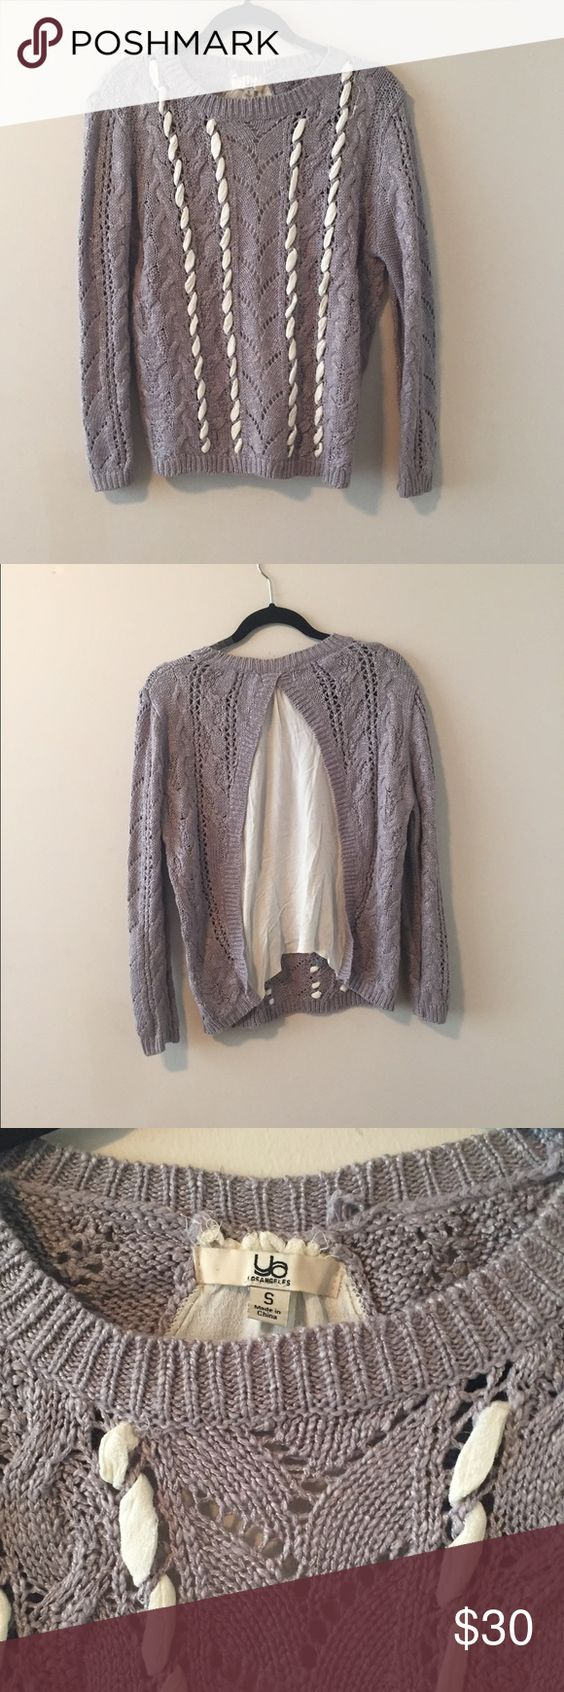 Grey sweater Grey knit sweater. Sheer material through the front and open sheer back. Thinner sweater. Worn once. No trades. Great condition. Ya Los Angeles Sweaters Crew & Scoop Necks